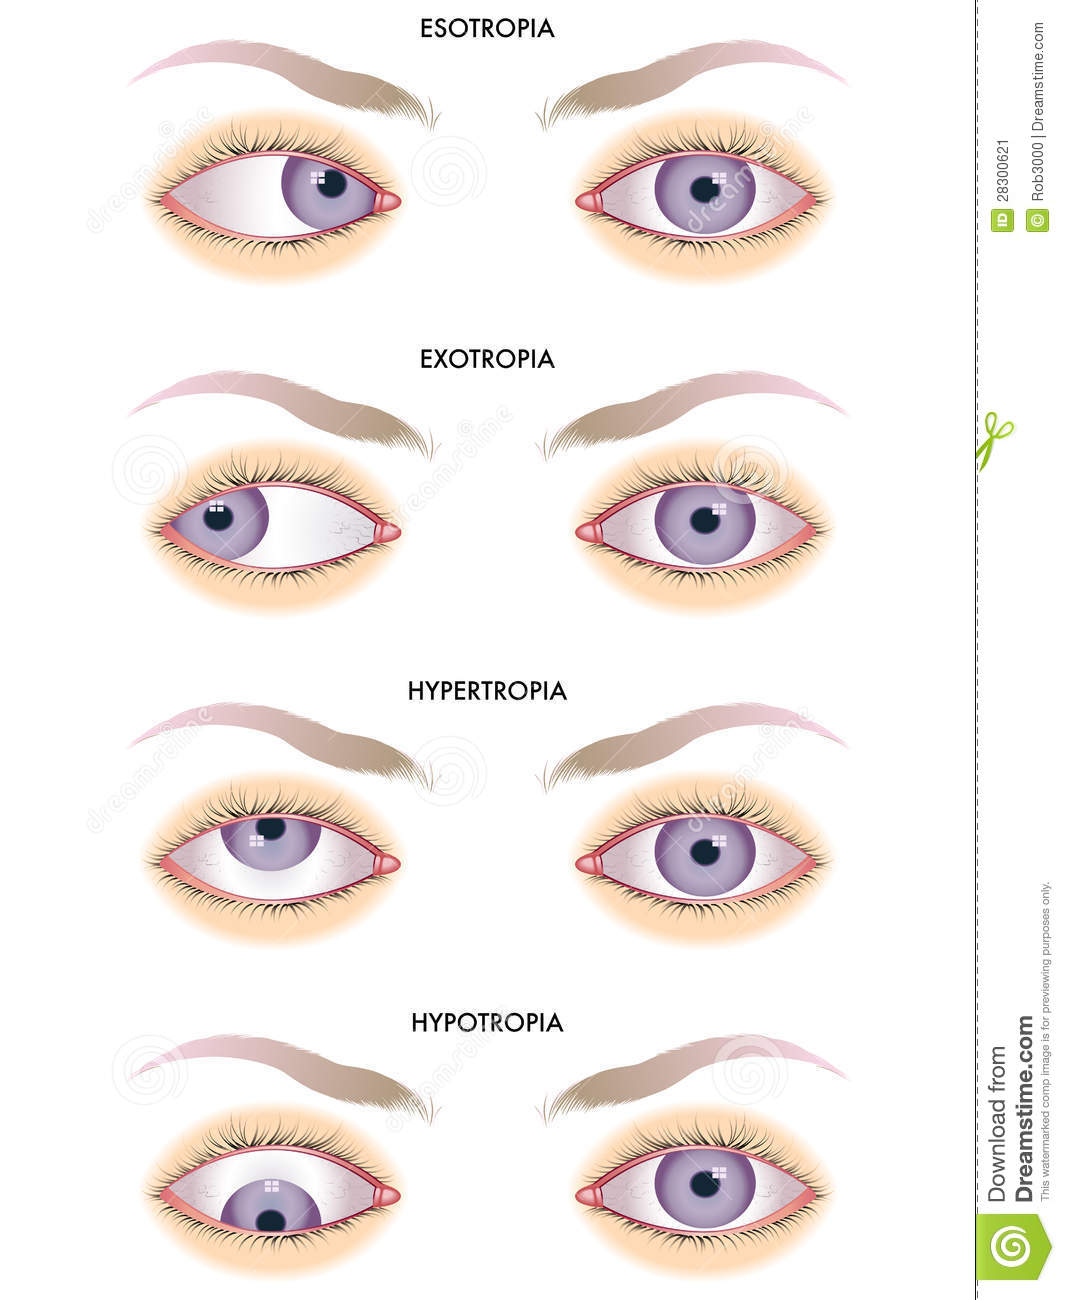 Medical illustration of the effects of the strabismus.